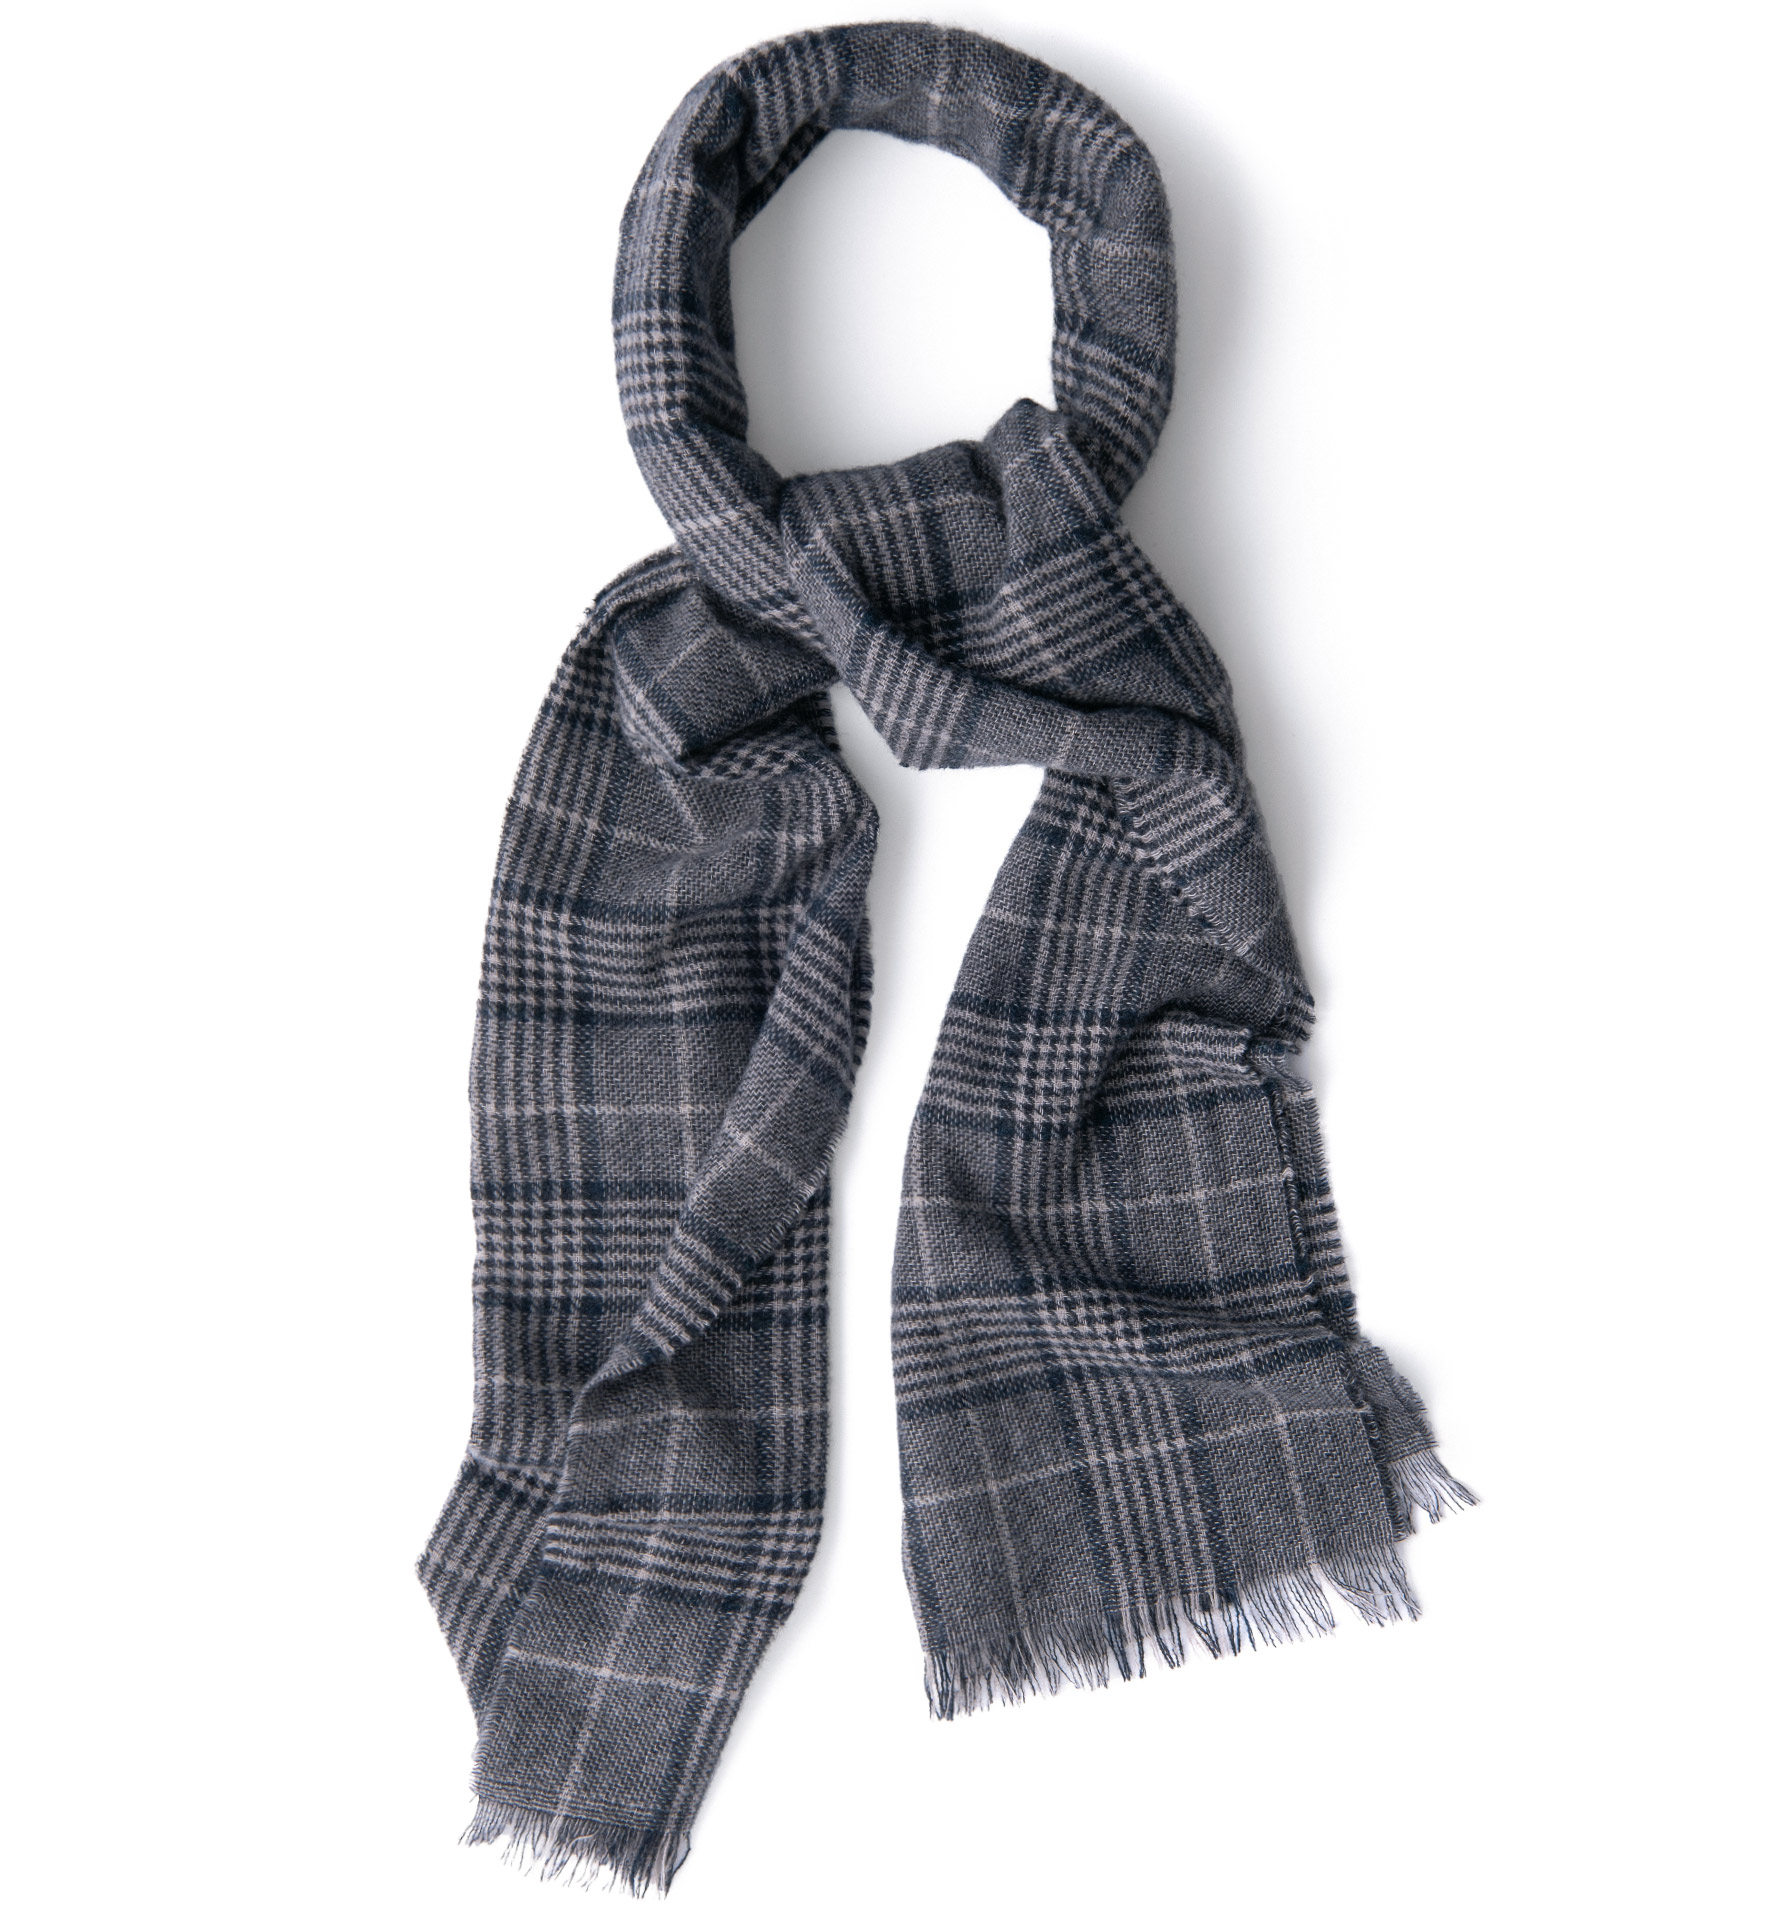 Zoom Image of Grey and Navy Large Plaid Cashmere Scarf